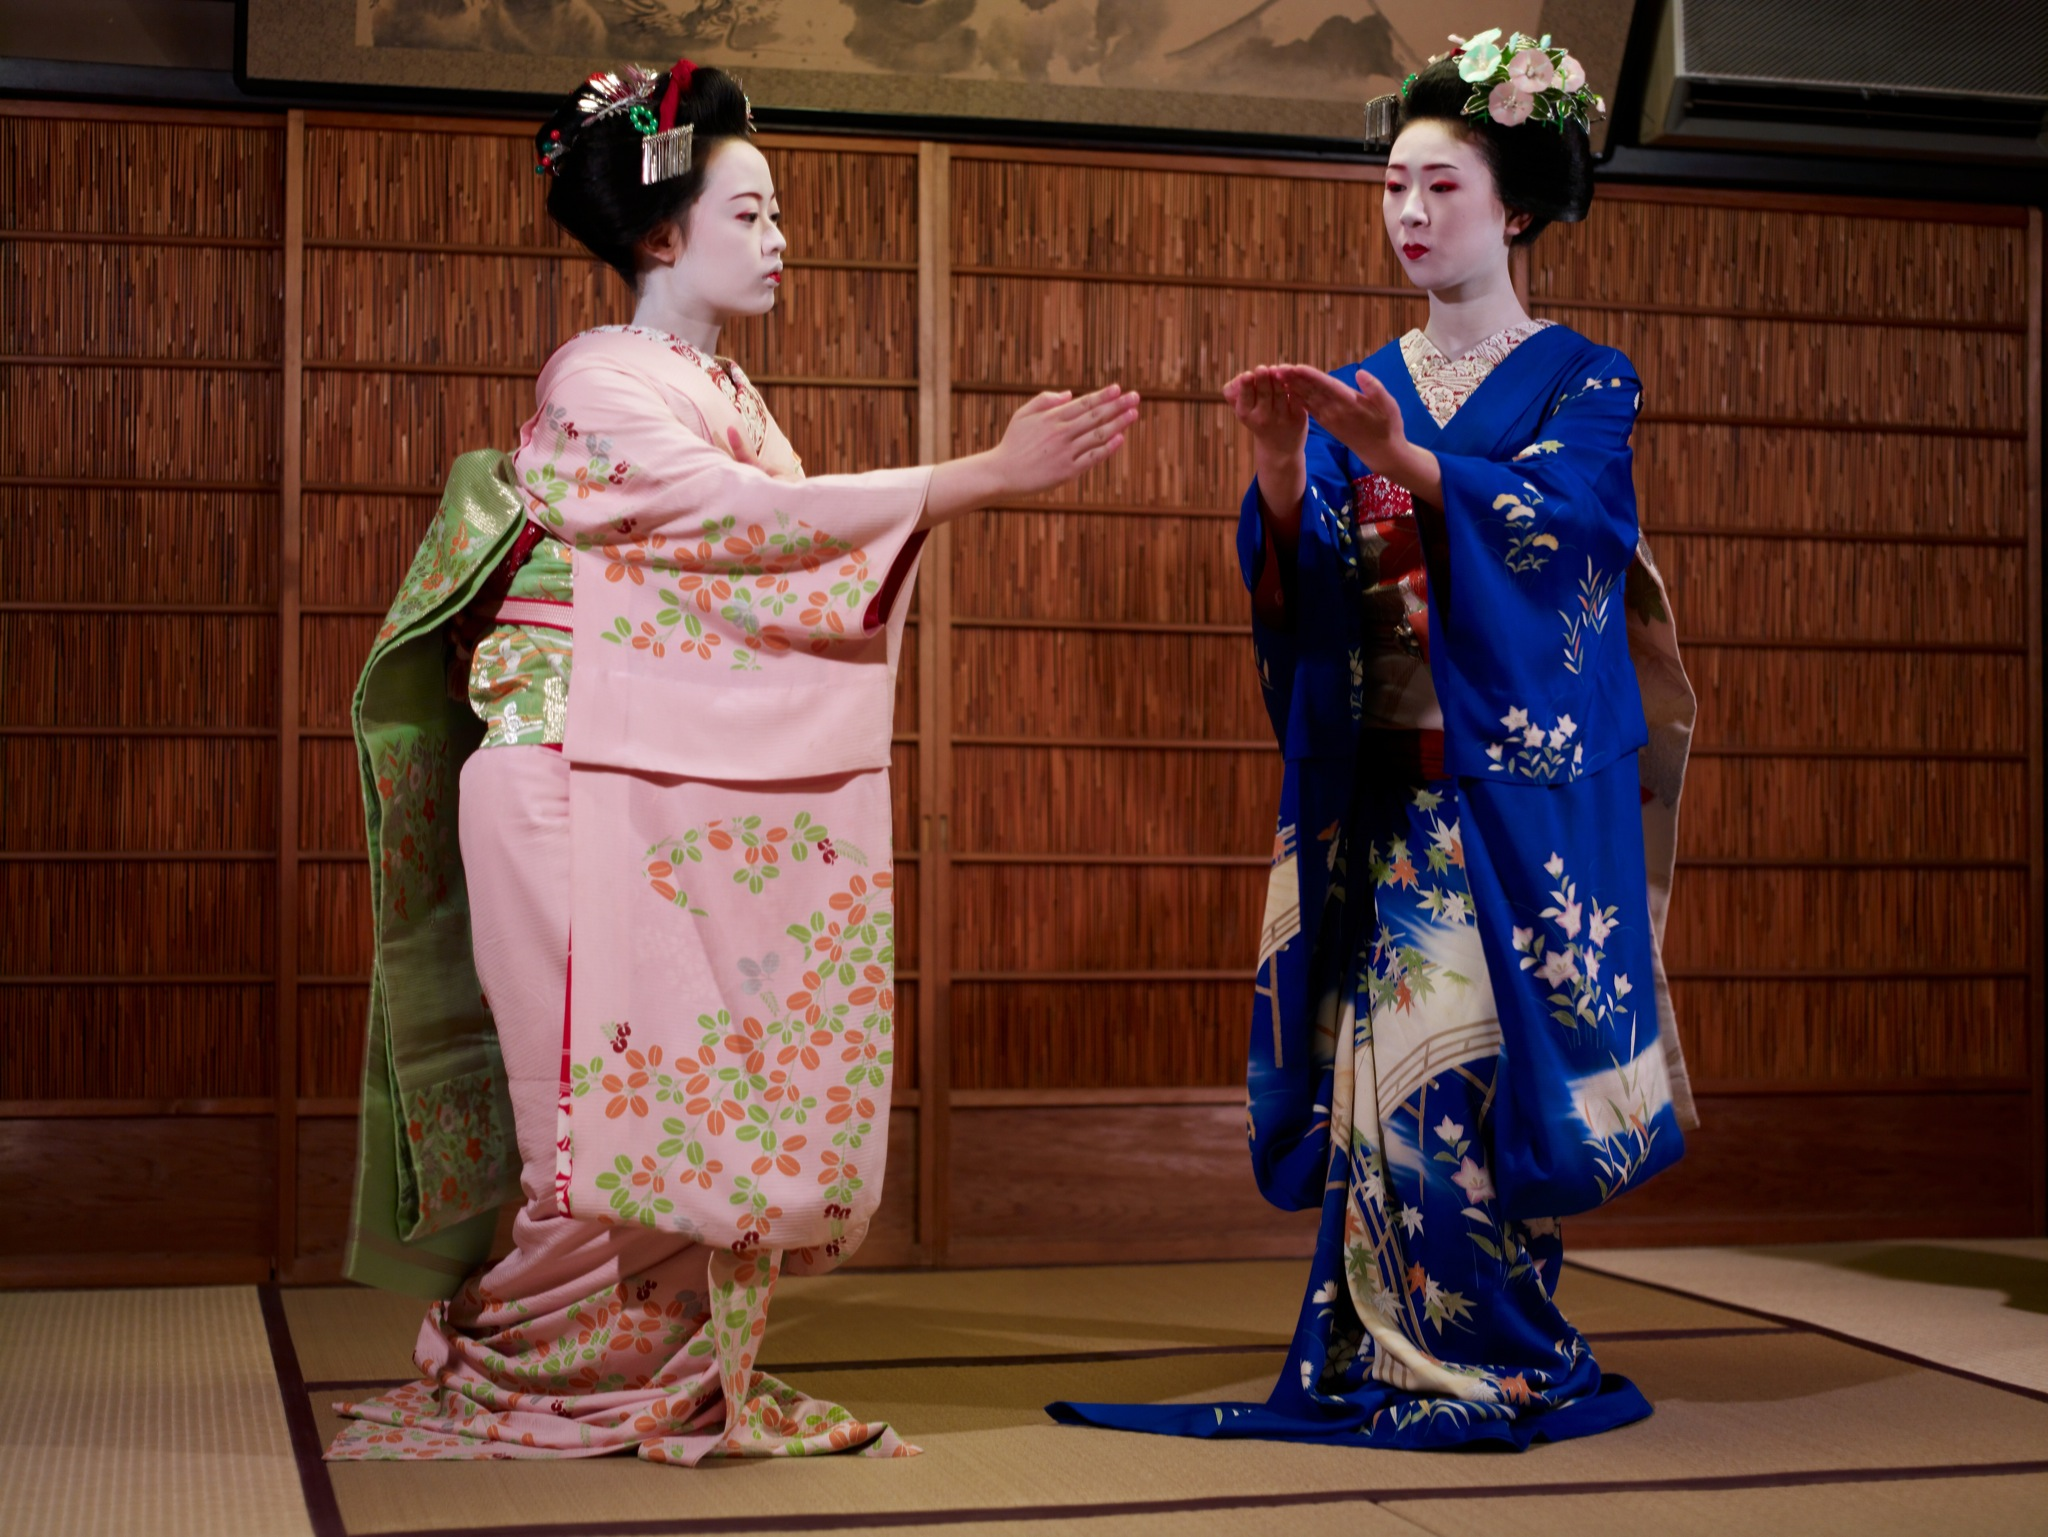 Japanese sexual traditions of cultures